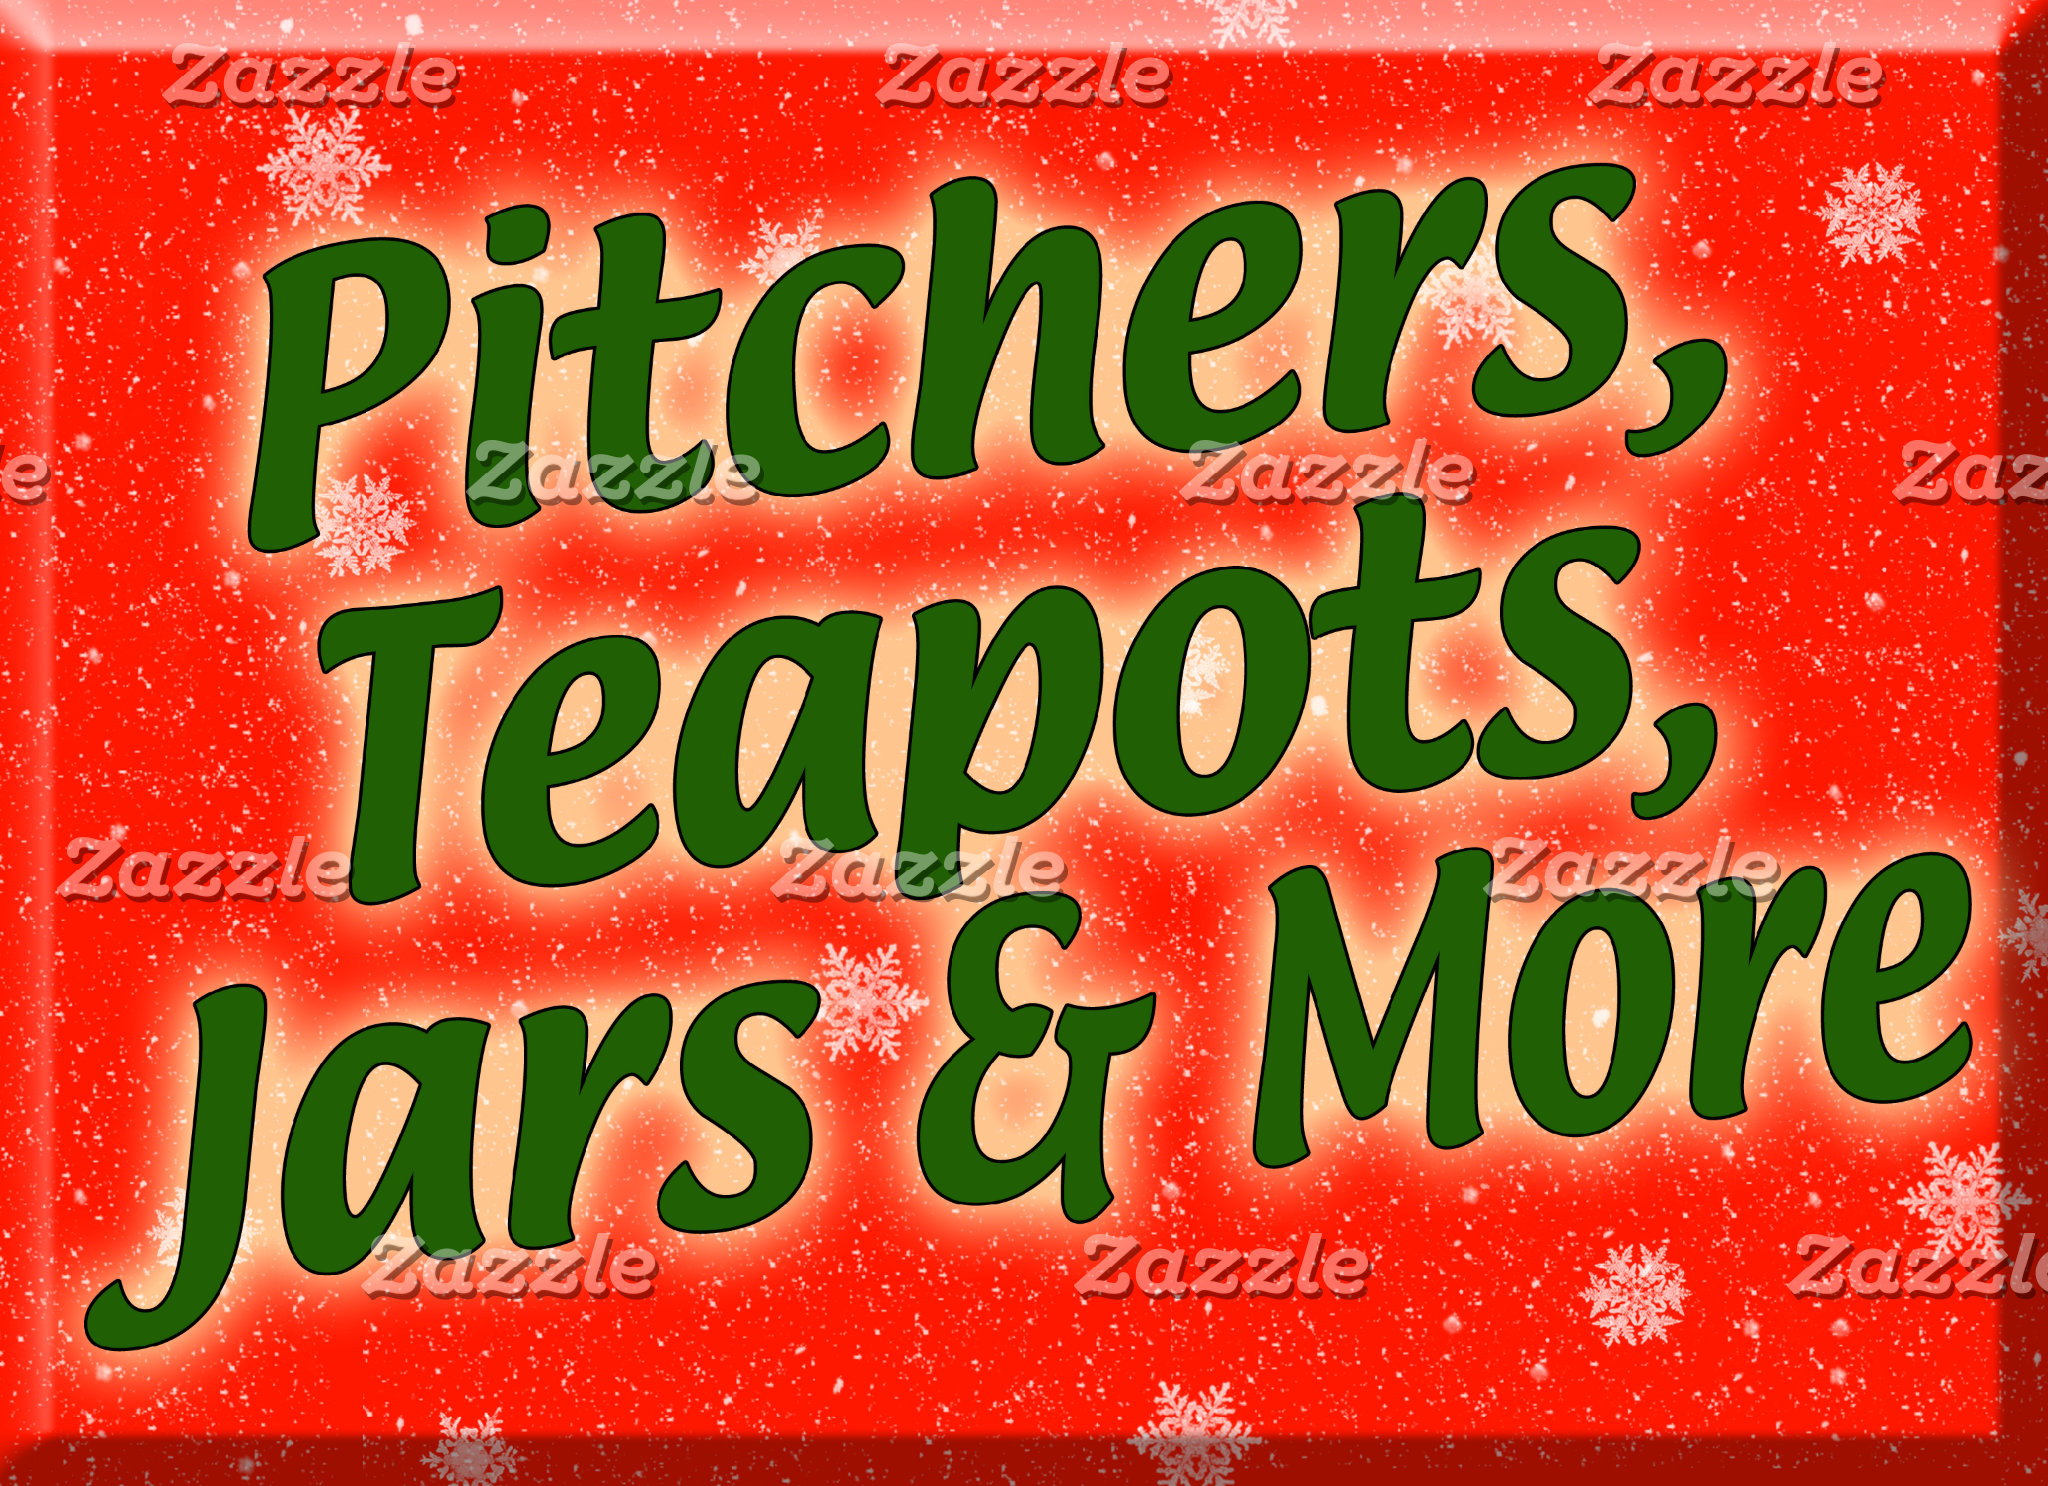 Holiday Pitchers, Teapots, Jars and More